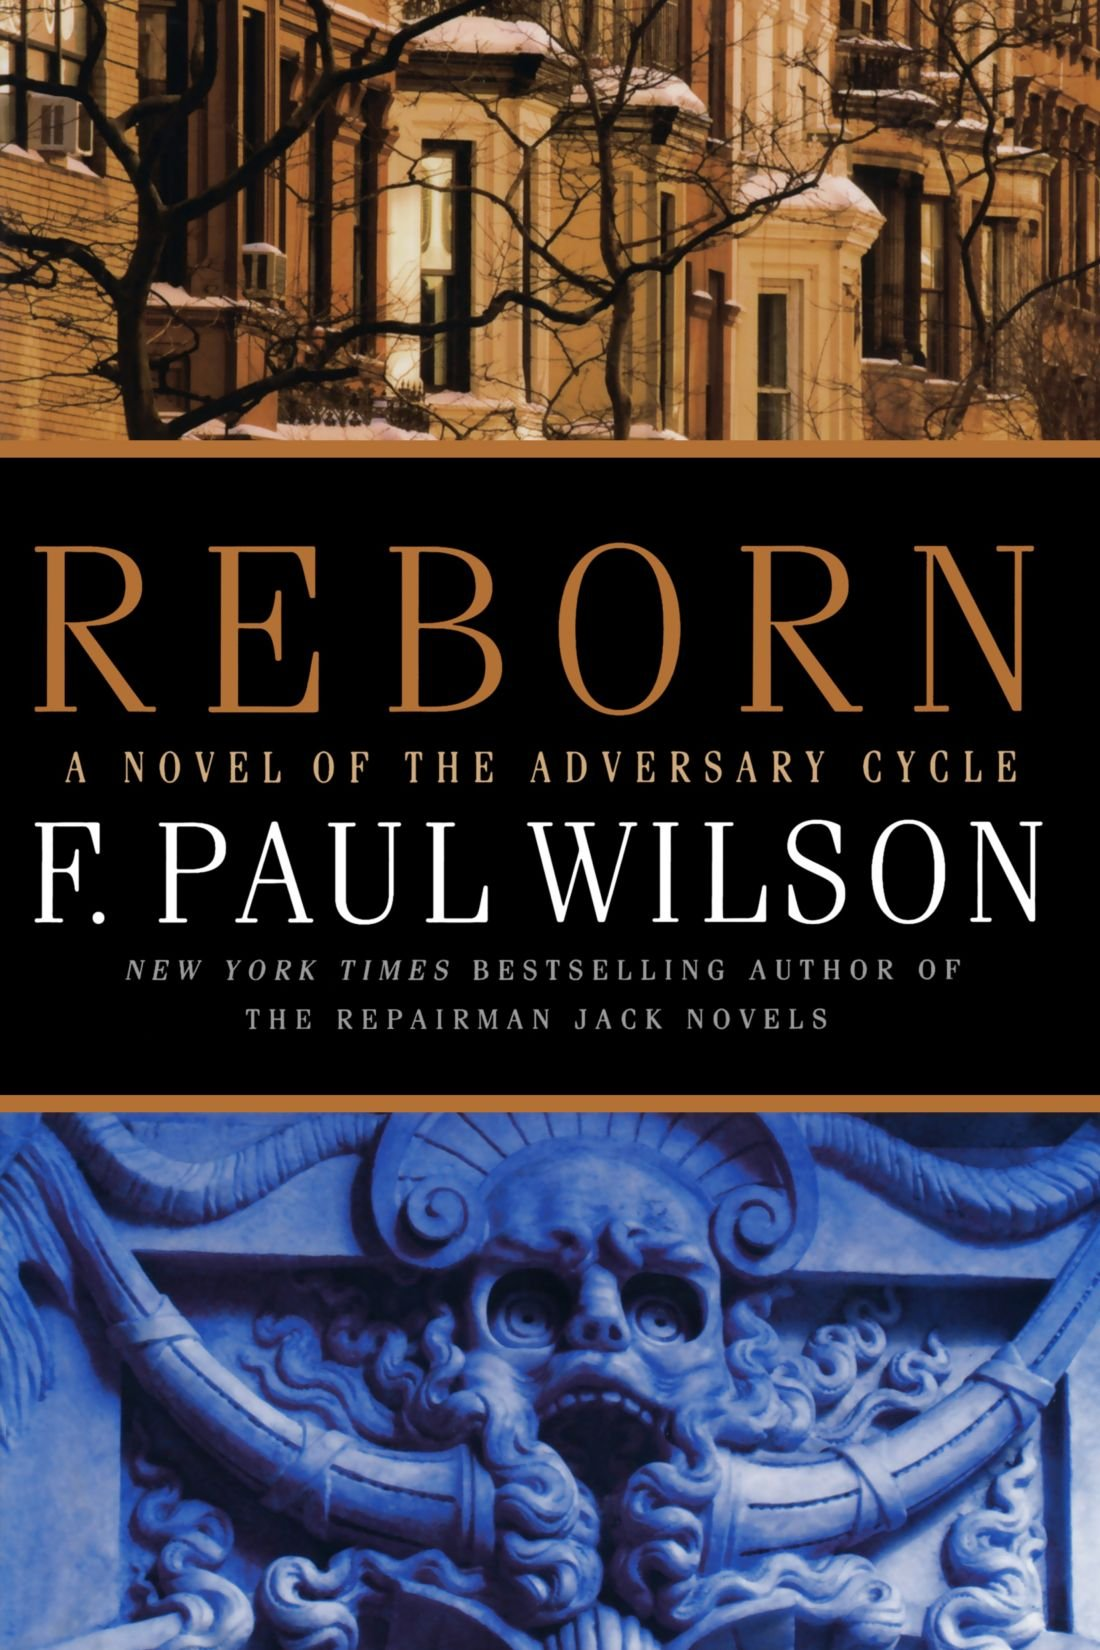 Reborn: Book IV of the Adversary Cycle (Adversary Cycle/Repairman Jack): F.  Paul Wilson: 9780765321657: Amazon.com: Books